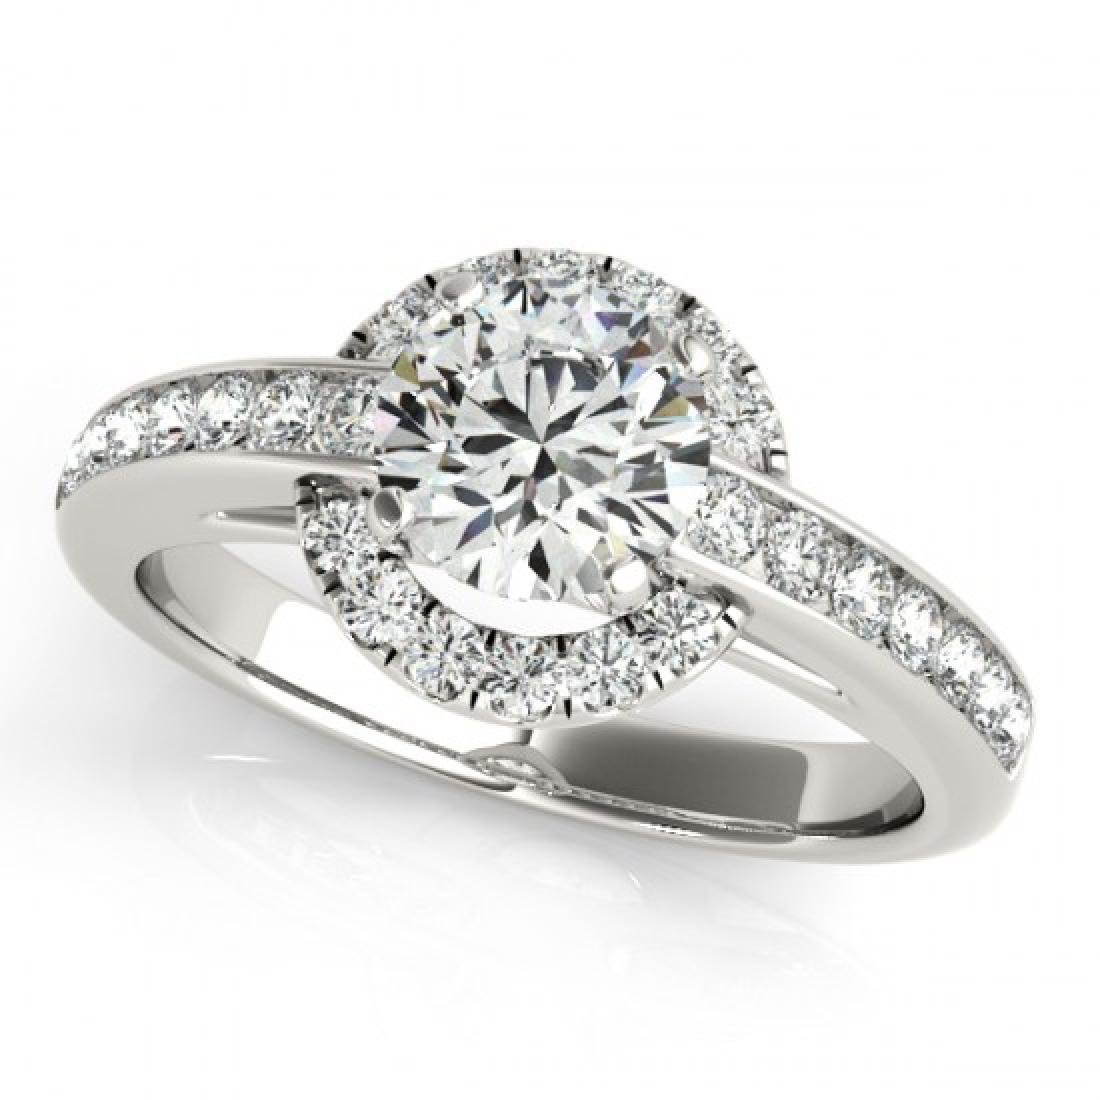 1 CTW Certified VS/SI Diamond Solitaire Halo Ring 14K